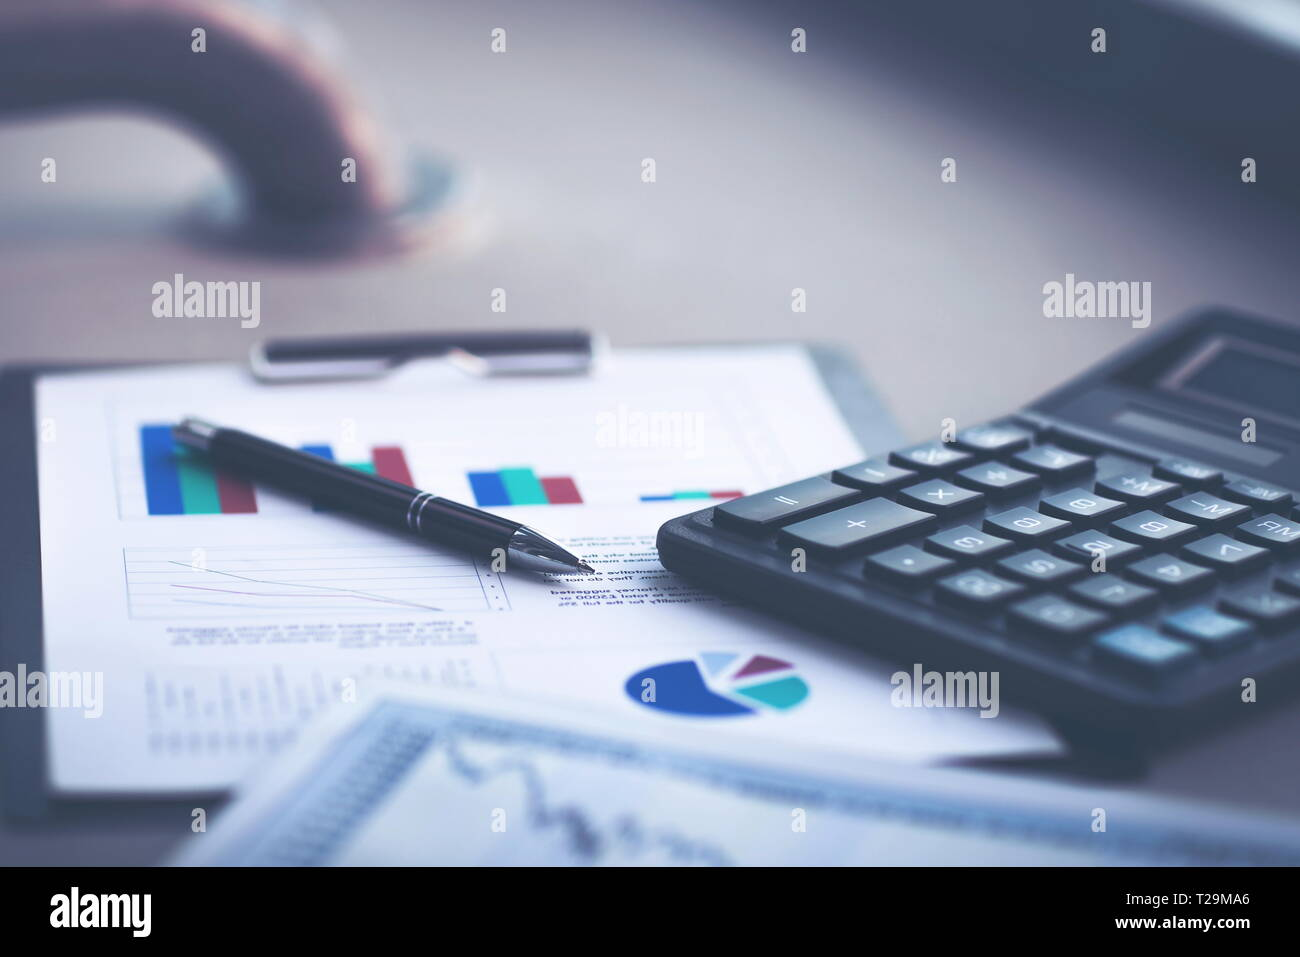 financial analysis on workplace businessman on a Sunny day - Stock Image